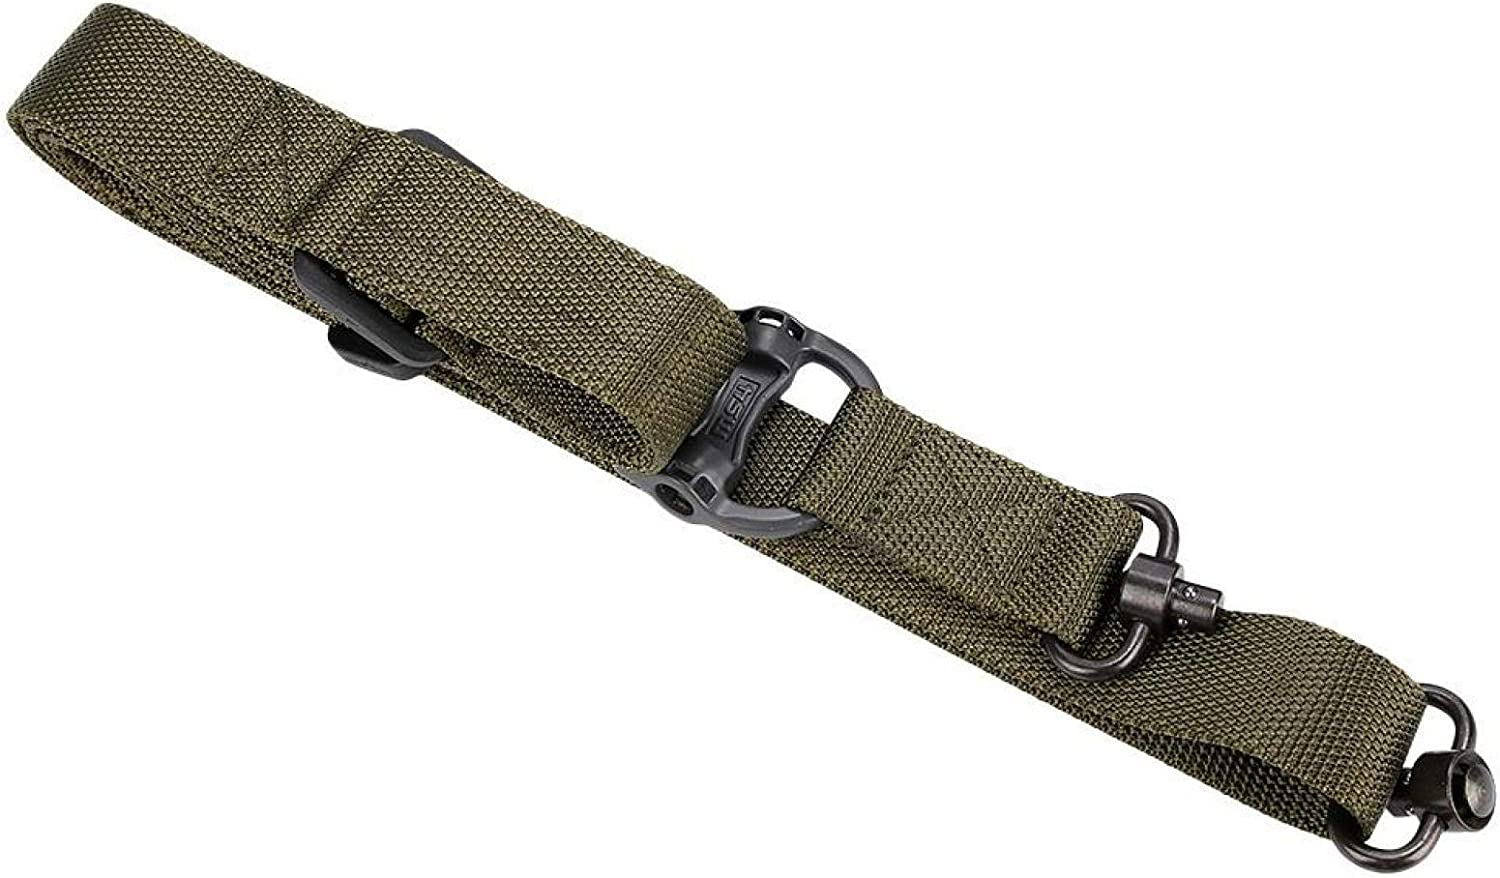 Army Green SALUTUYA 2 Punkte Waffeng/ürtel Fast Transition Tactic Dual-Point Mission Sling System Nylon mit hoher Dichte f/ür die Jagd